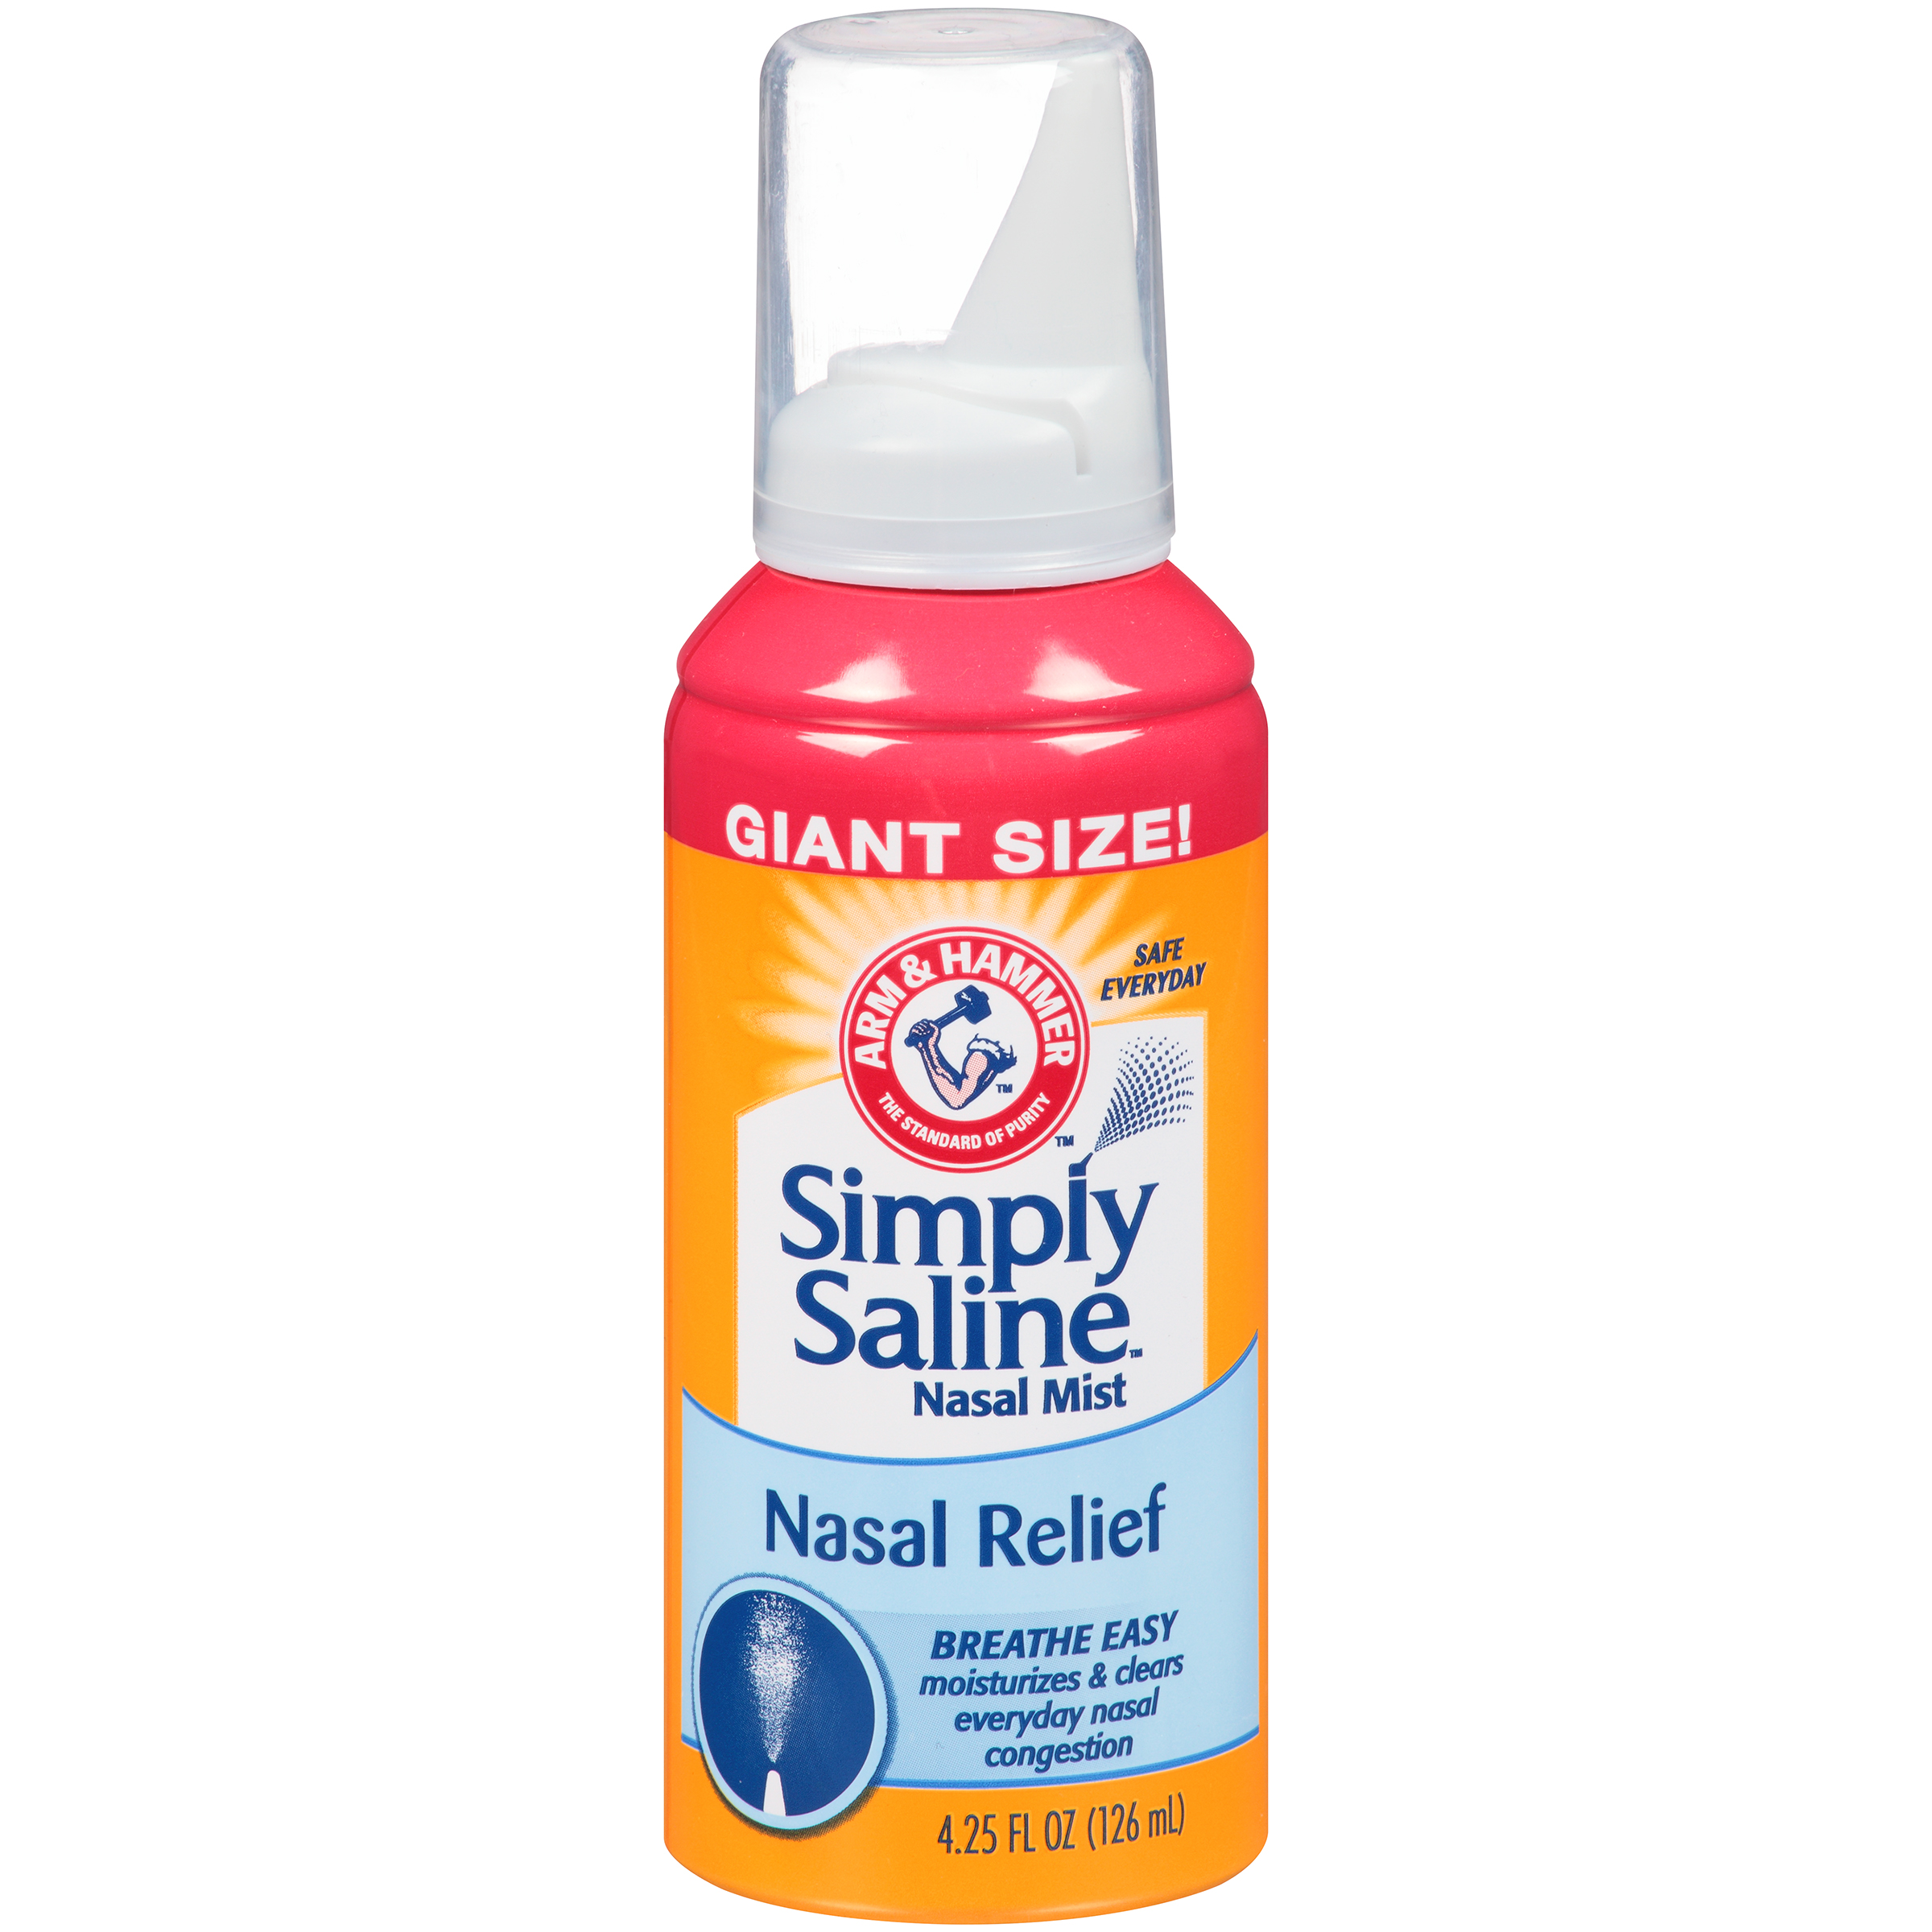 The Best Saline Nasal Sprays for Your Nose and Sinuses